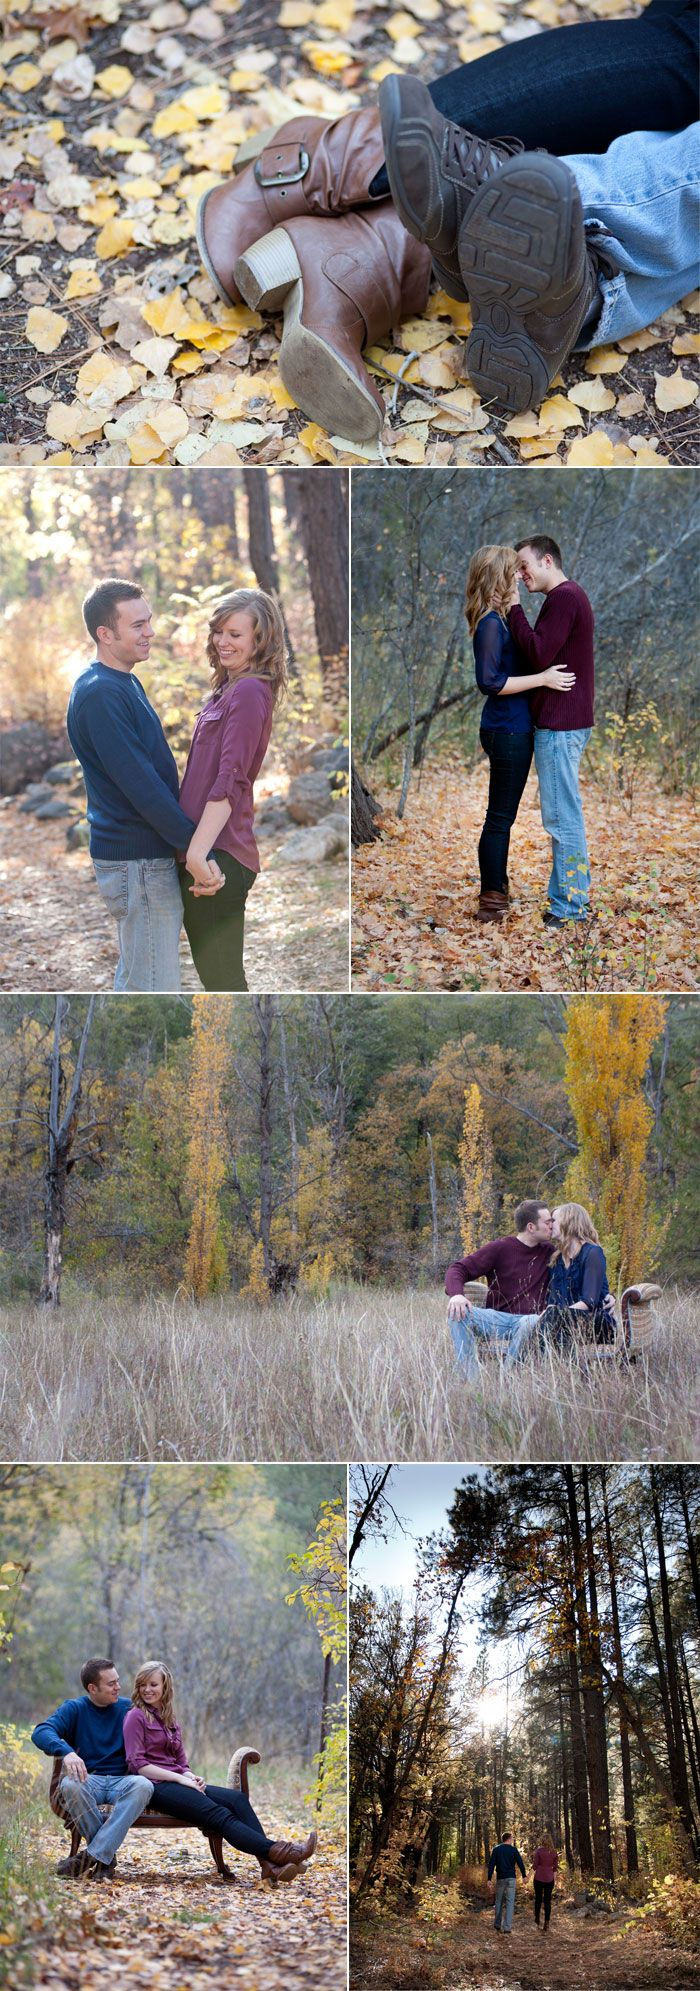 Engagement - fall. Love the top pic of the shoes